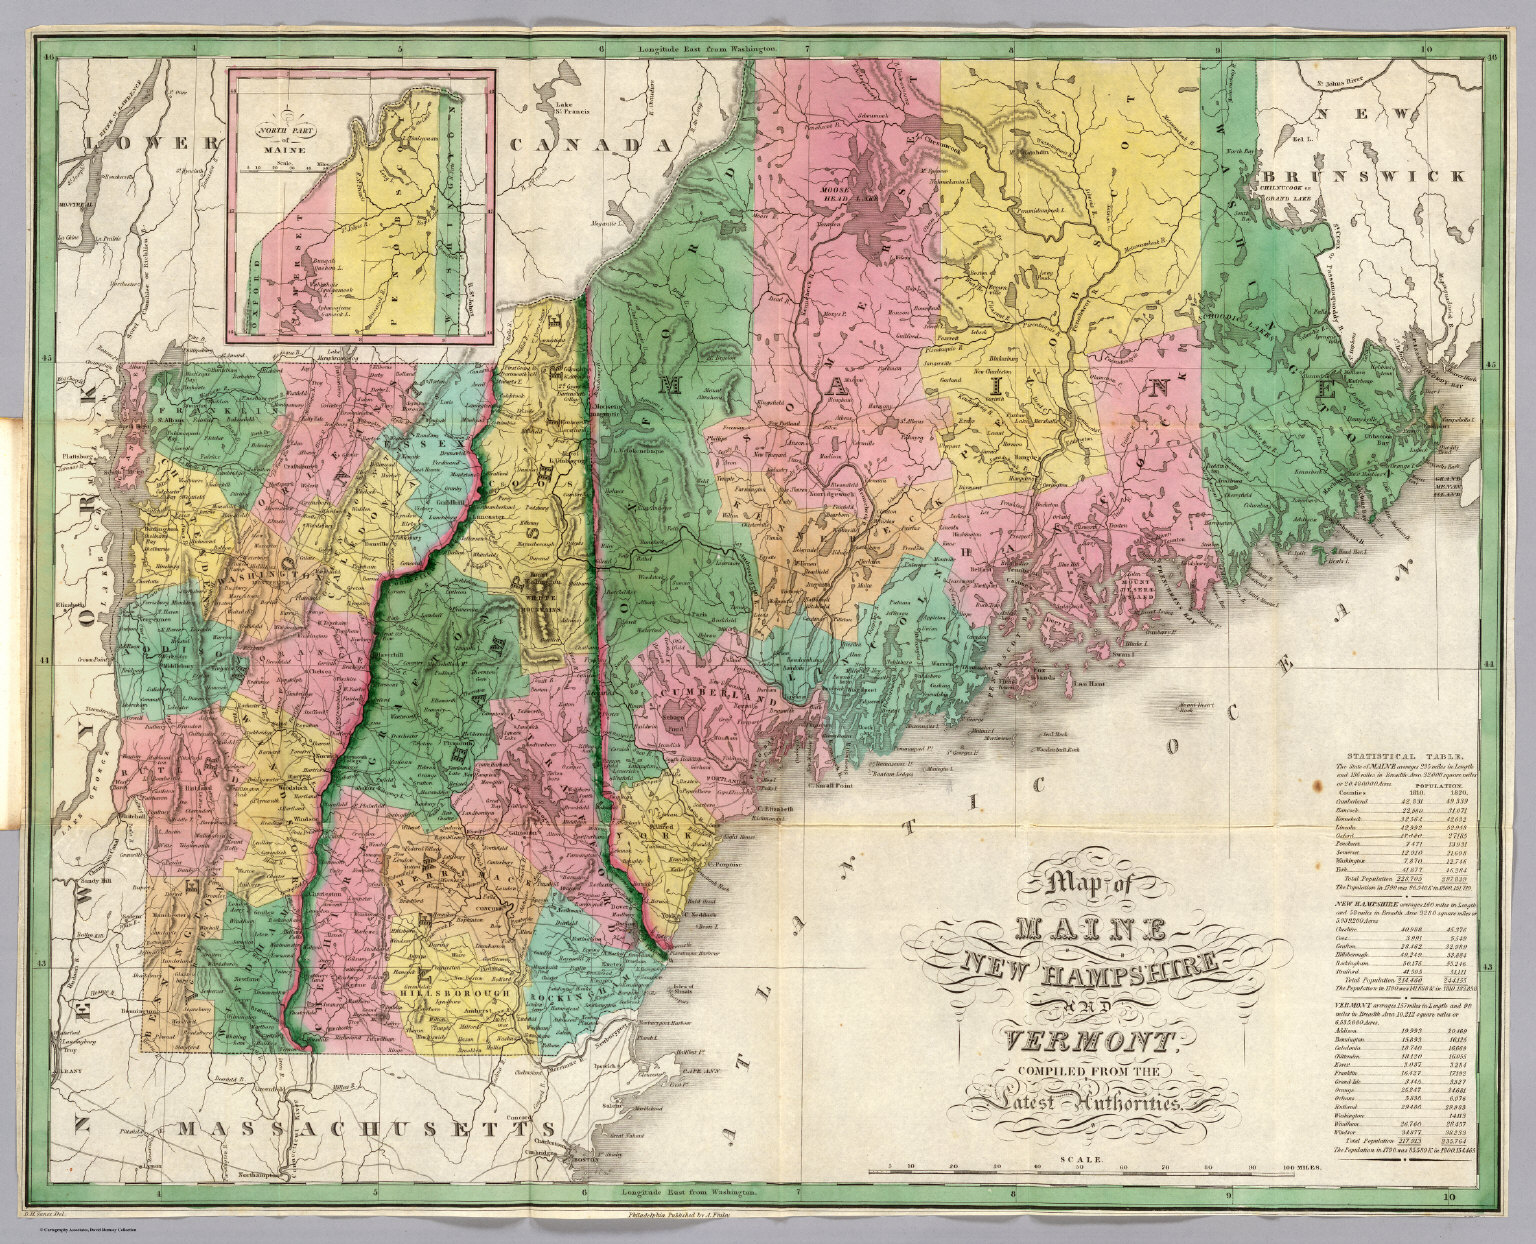 Maine New Hampshire Vermont David Rumsey Historical Map Collection